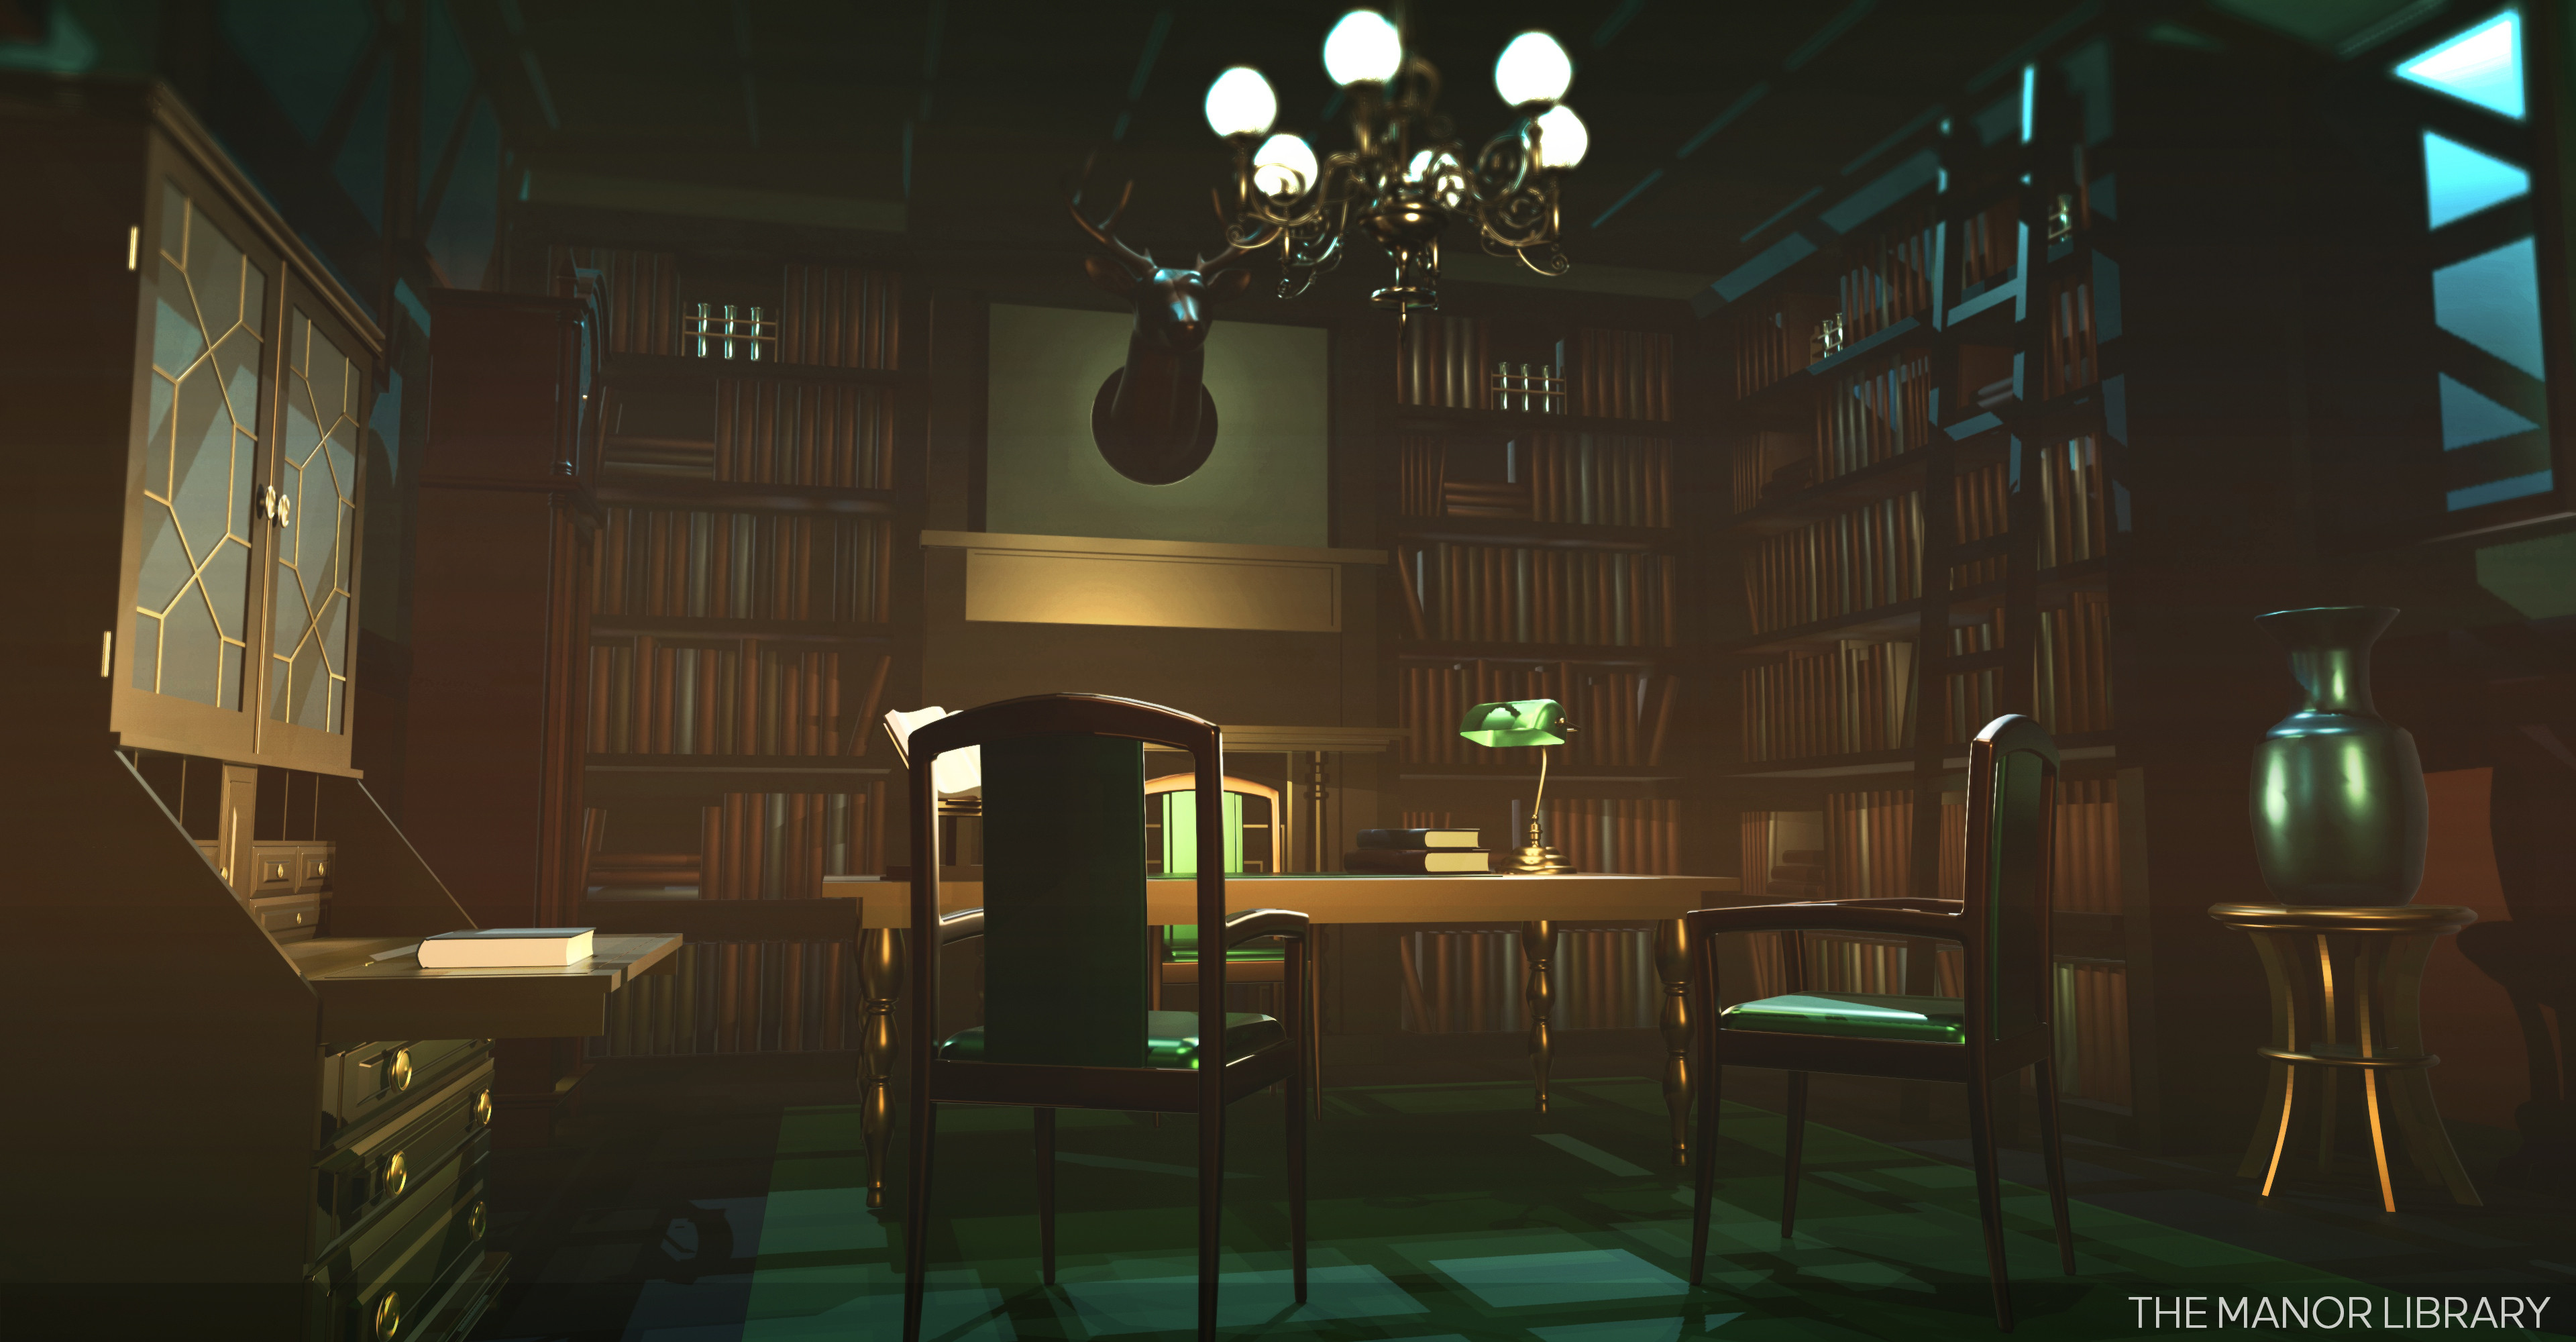 The_Manor_Library_Render_02